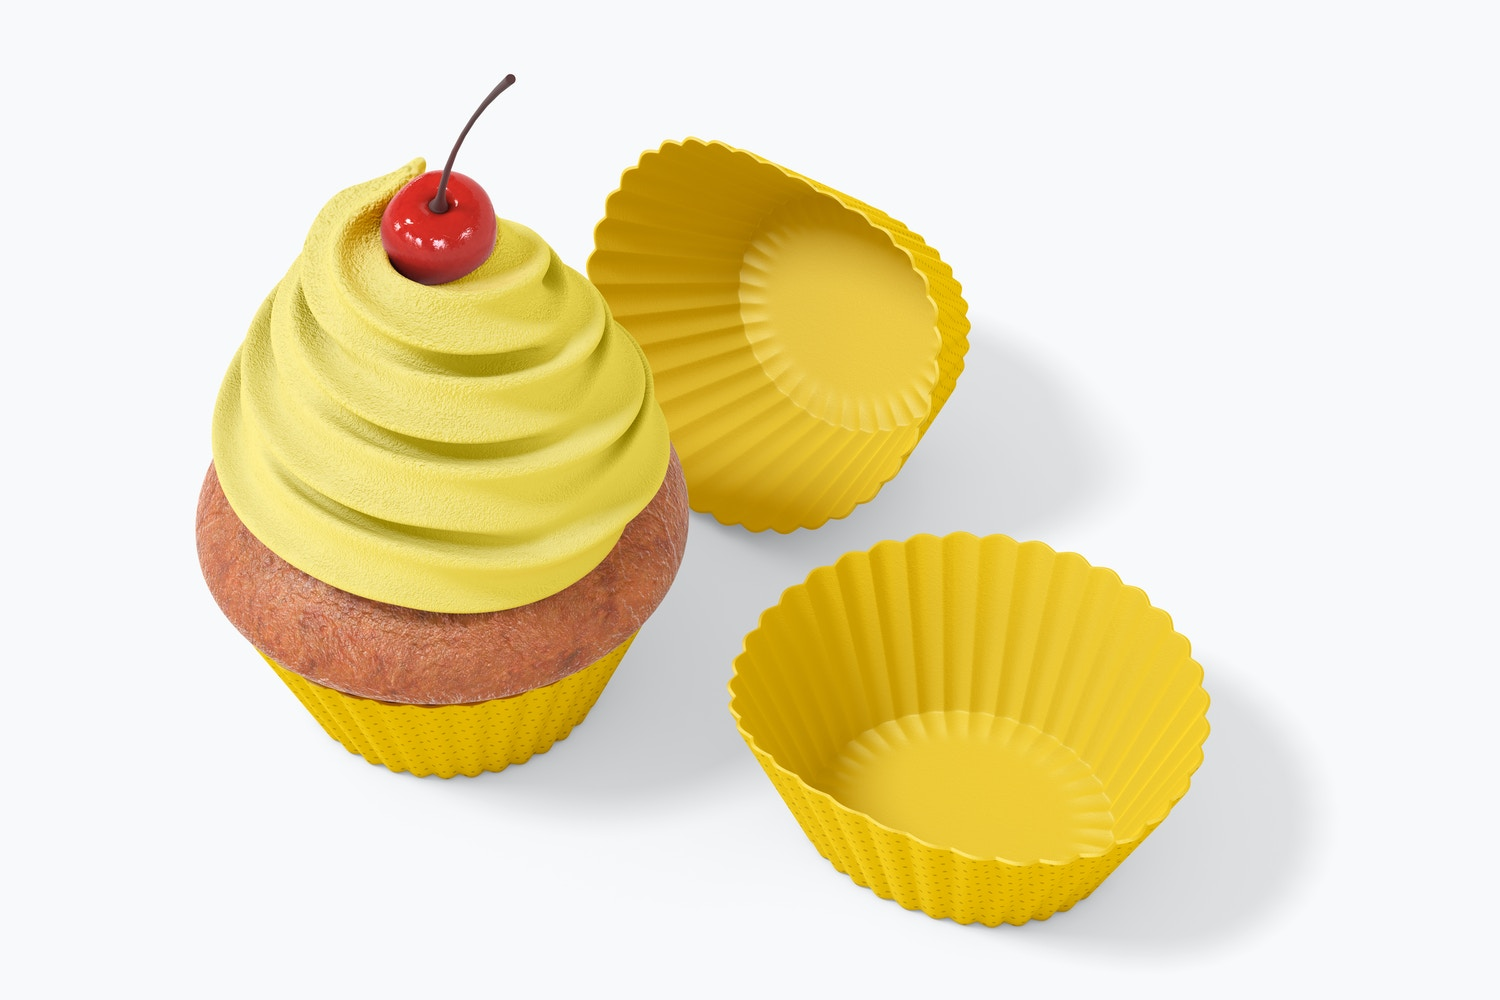 Cupcake with Silicone Baking Cup Mockup, Top View